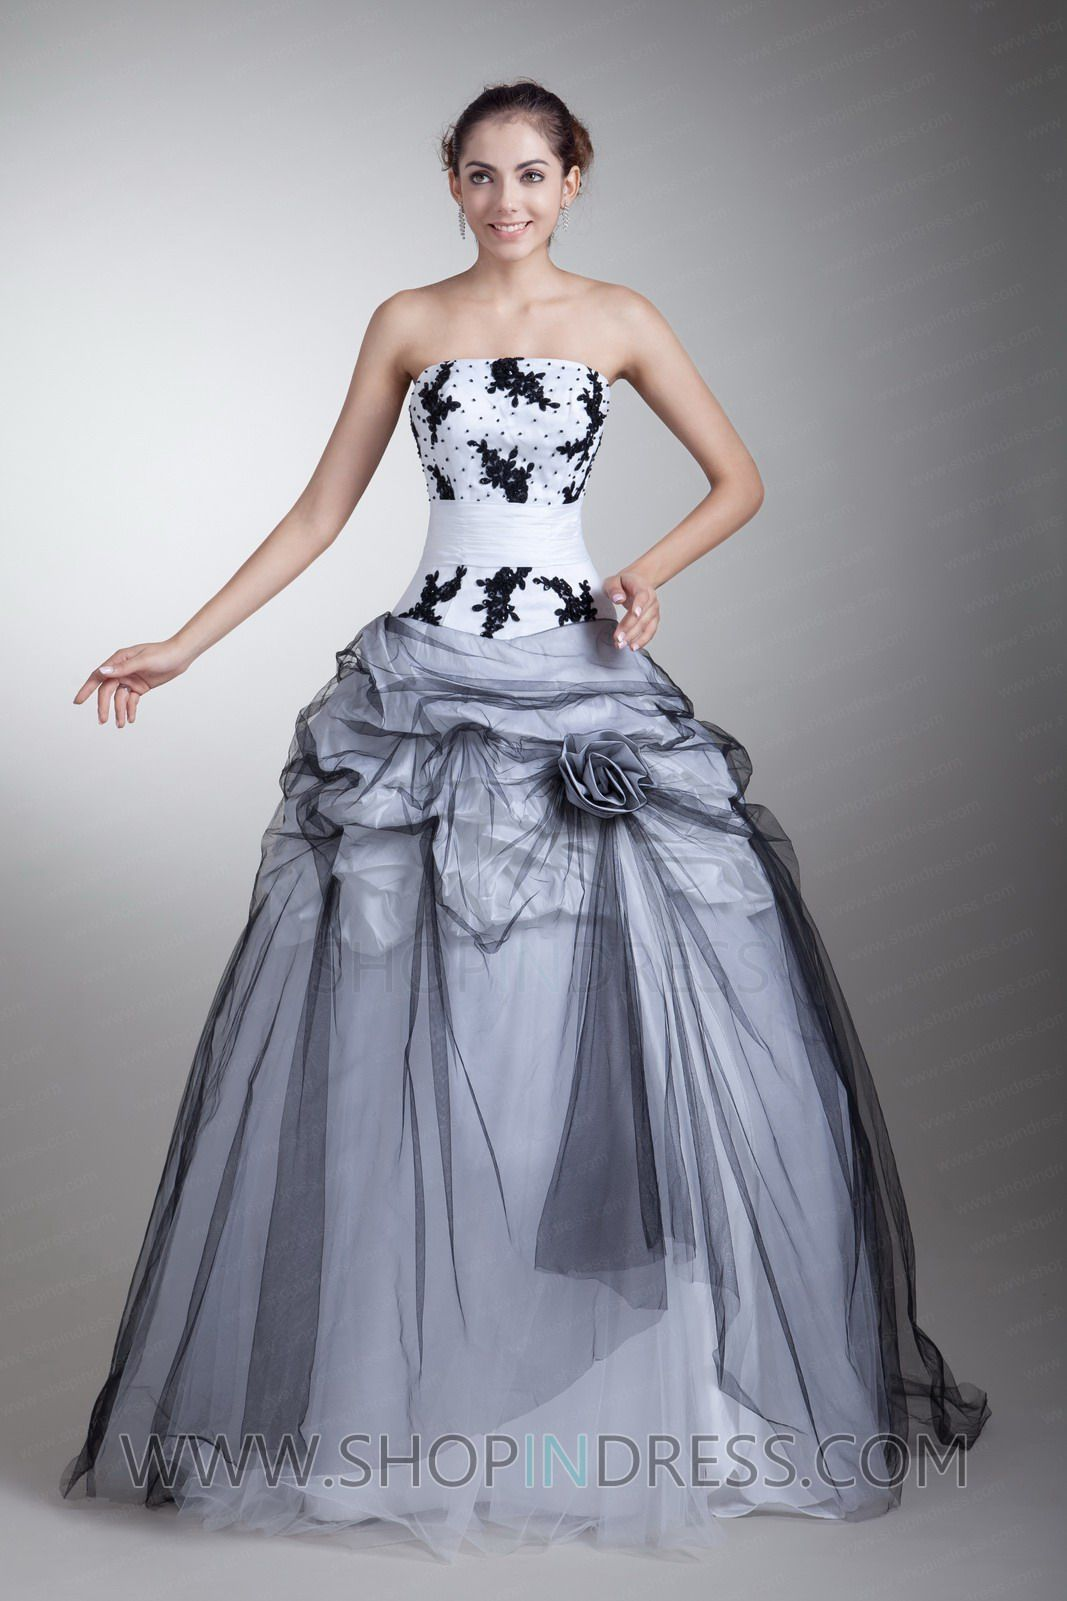 17 Best images about Le Masquerade Ball Gowns.. on Pinterest ...